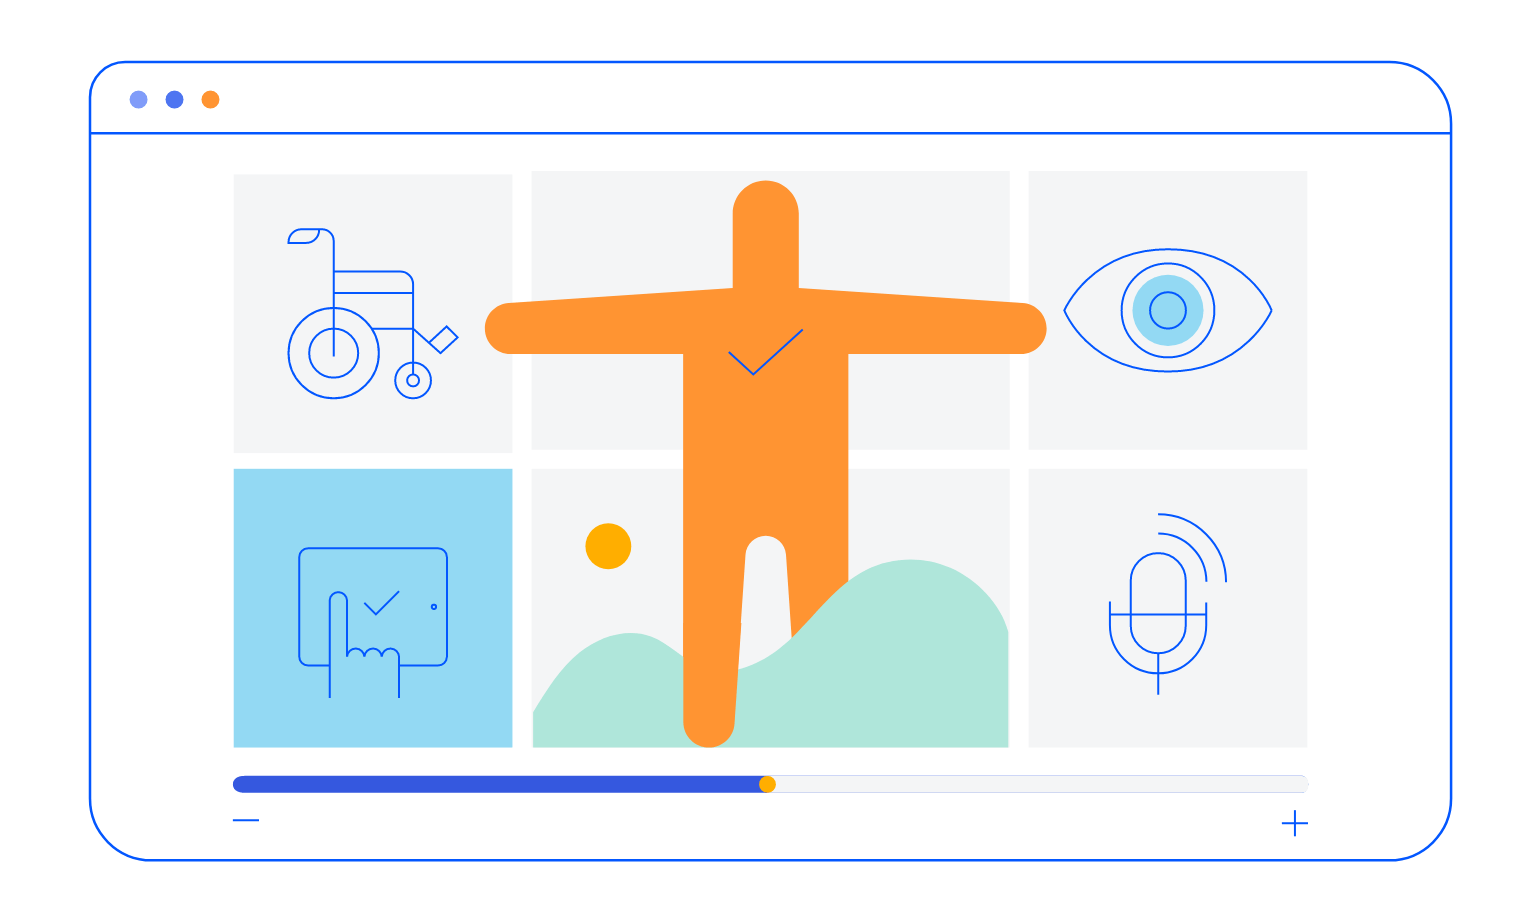 Illustration showcasing various icons associated with accessibility (voice navigation, screen readers, etc.)